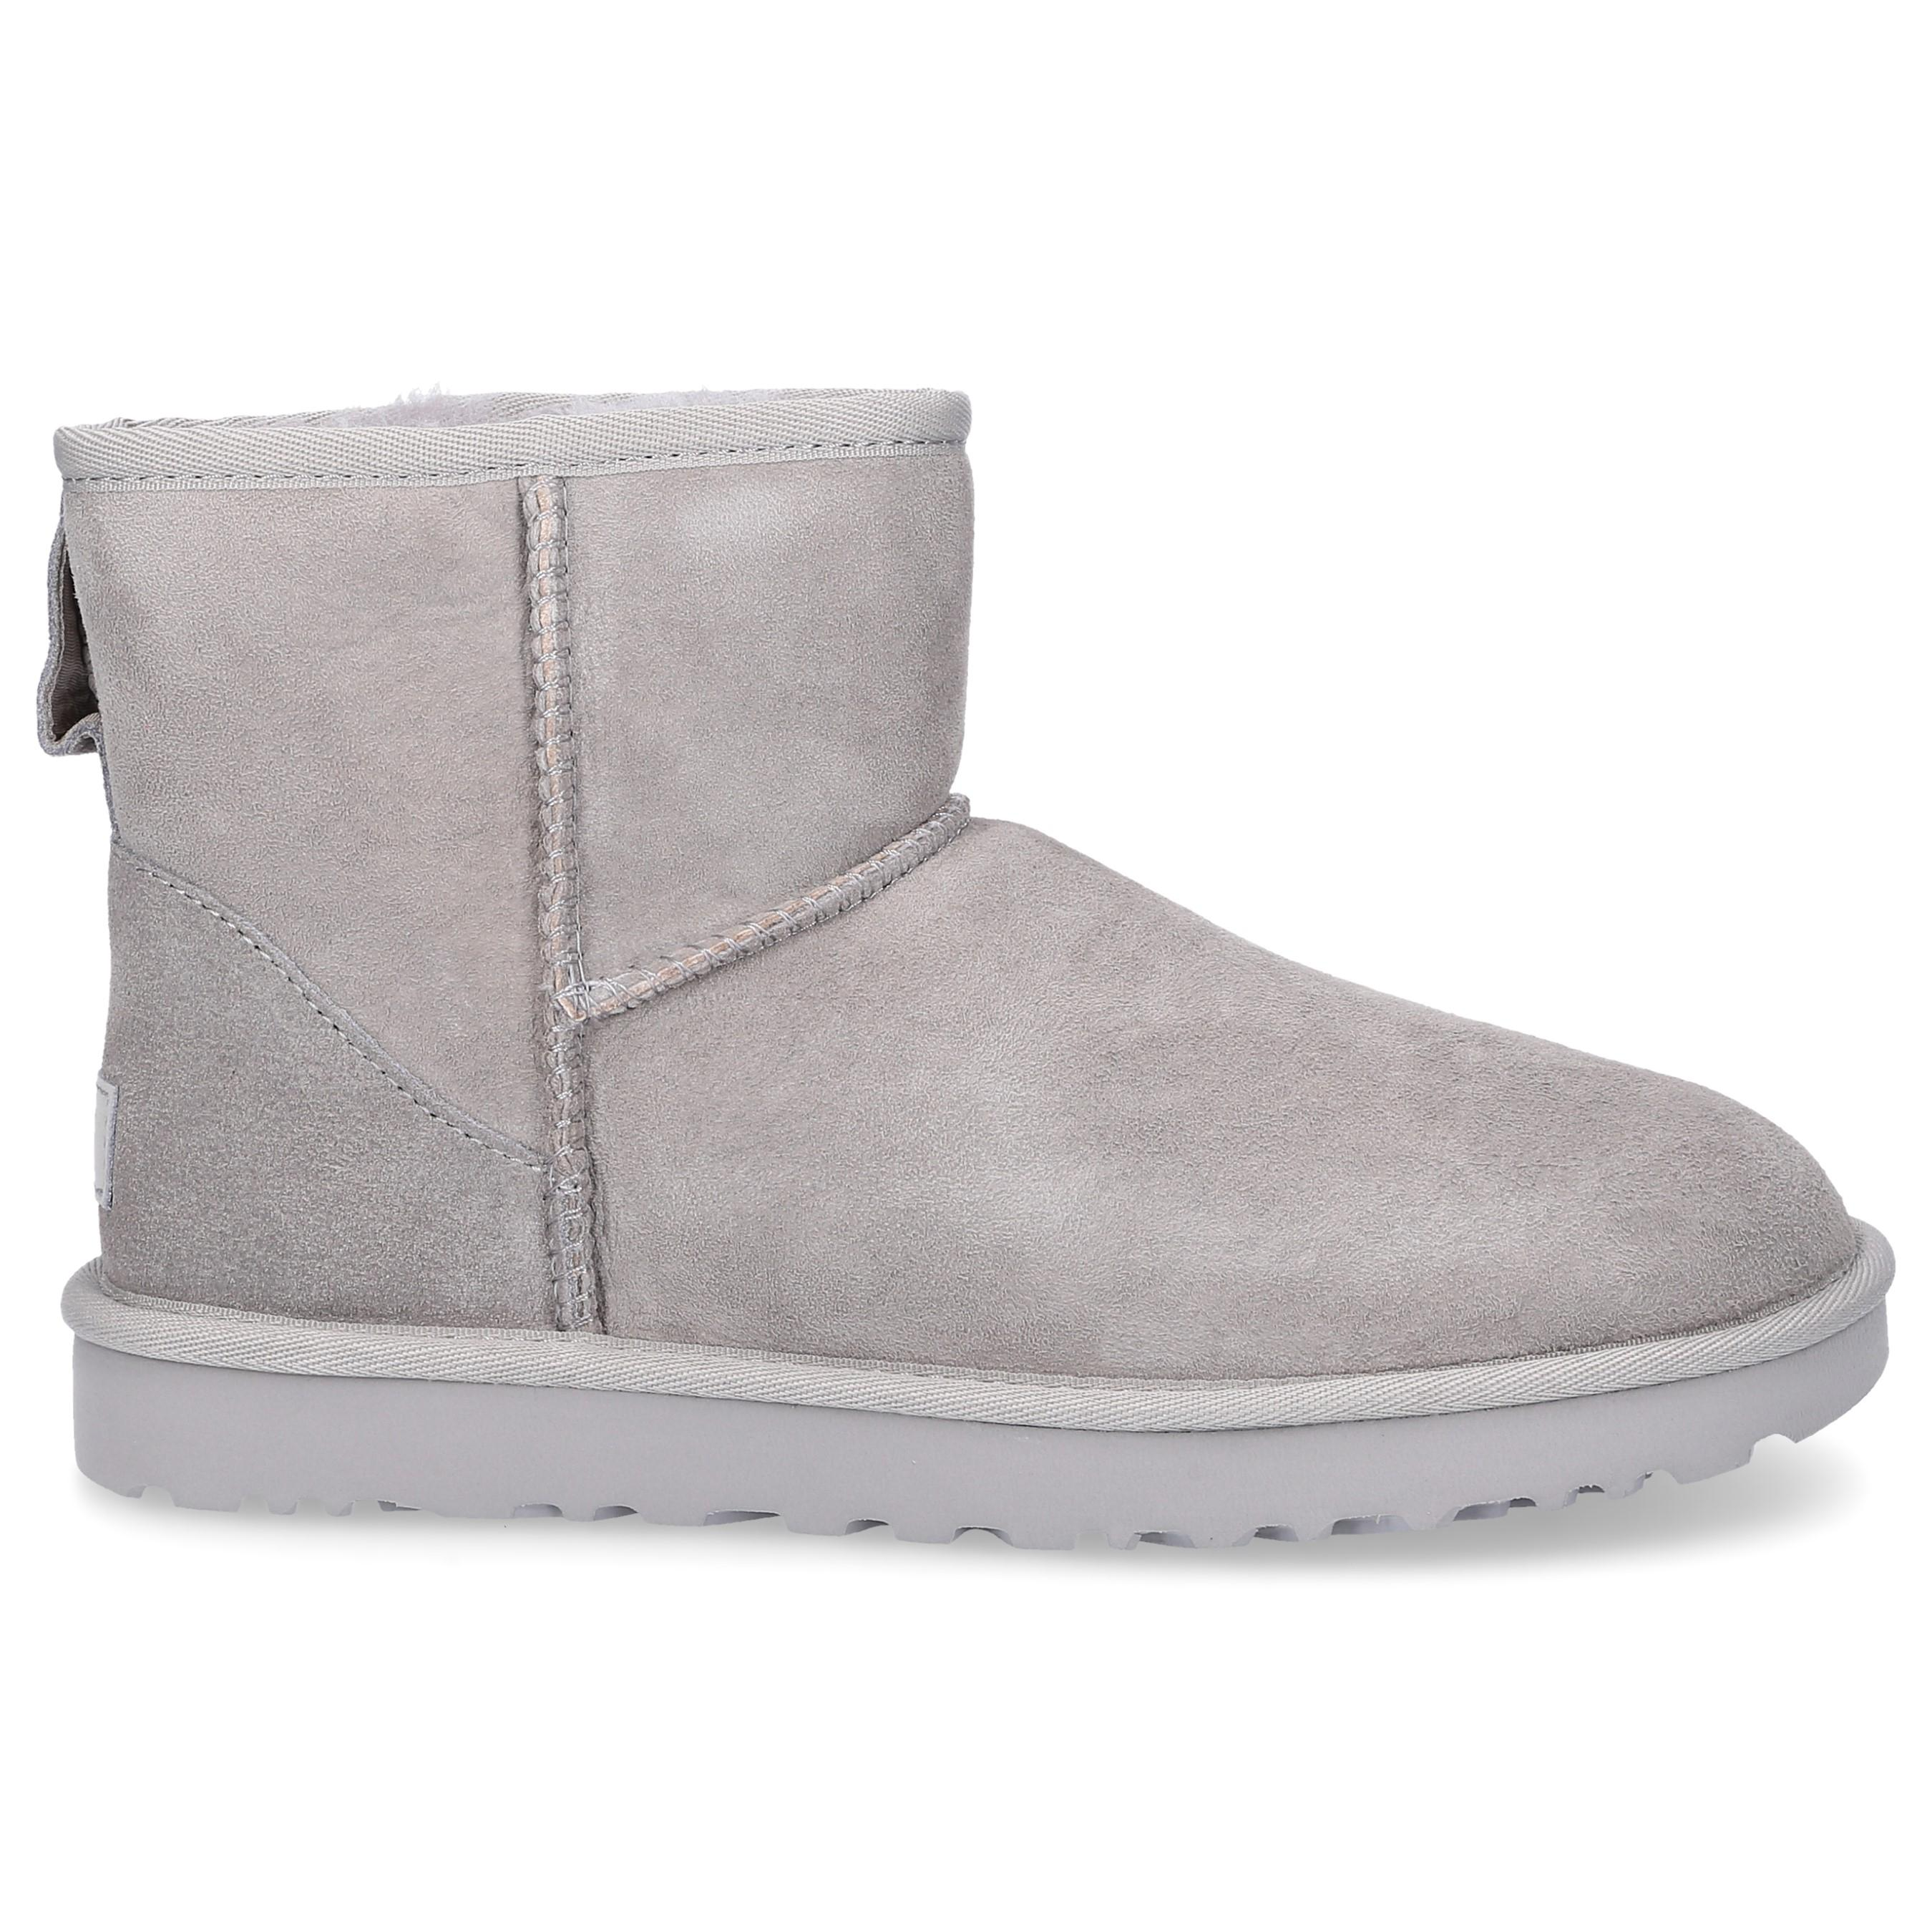 a5ff51007e1 UGG Ankle Boots Grey Classic Mini Ii in Gray - Lyst